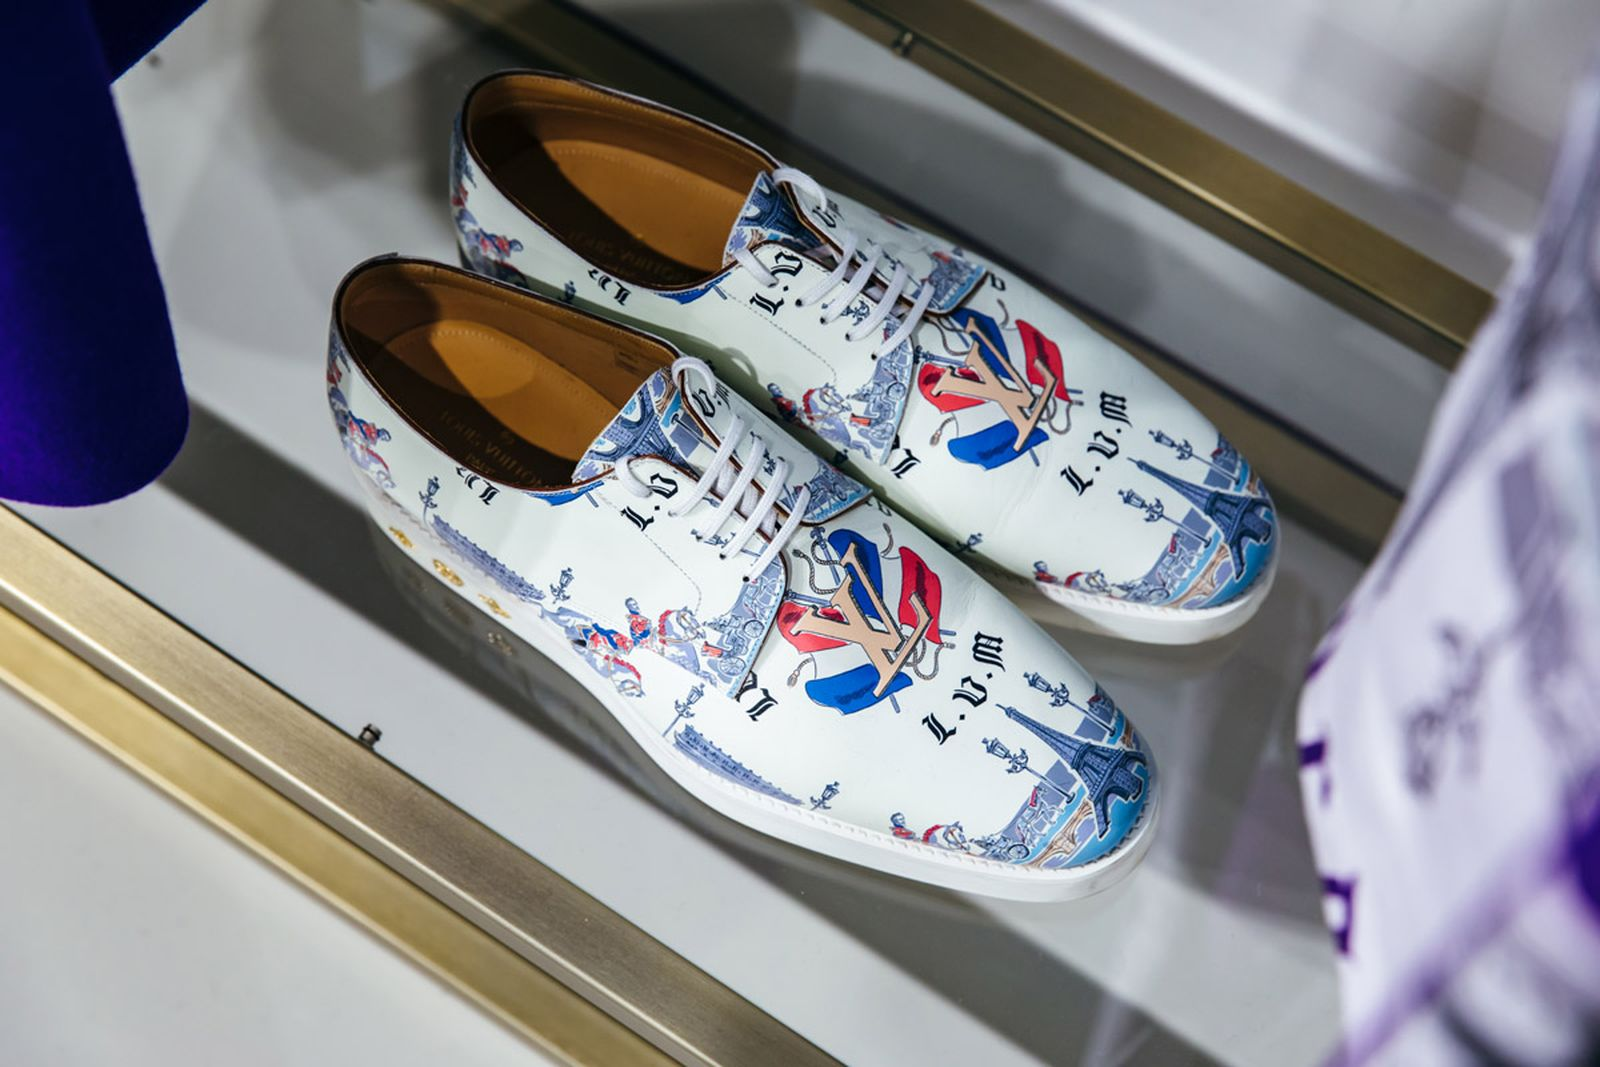 MFW19 Paris LouisVuitton ReSees Sneakers JulienTell 12 Louis Vuitton pfw virgil abloh